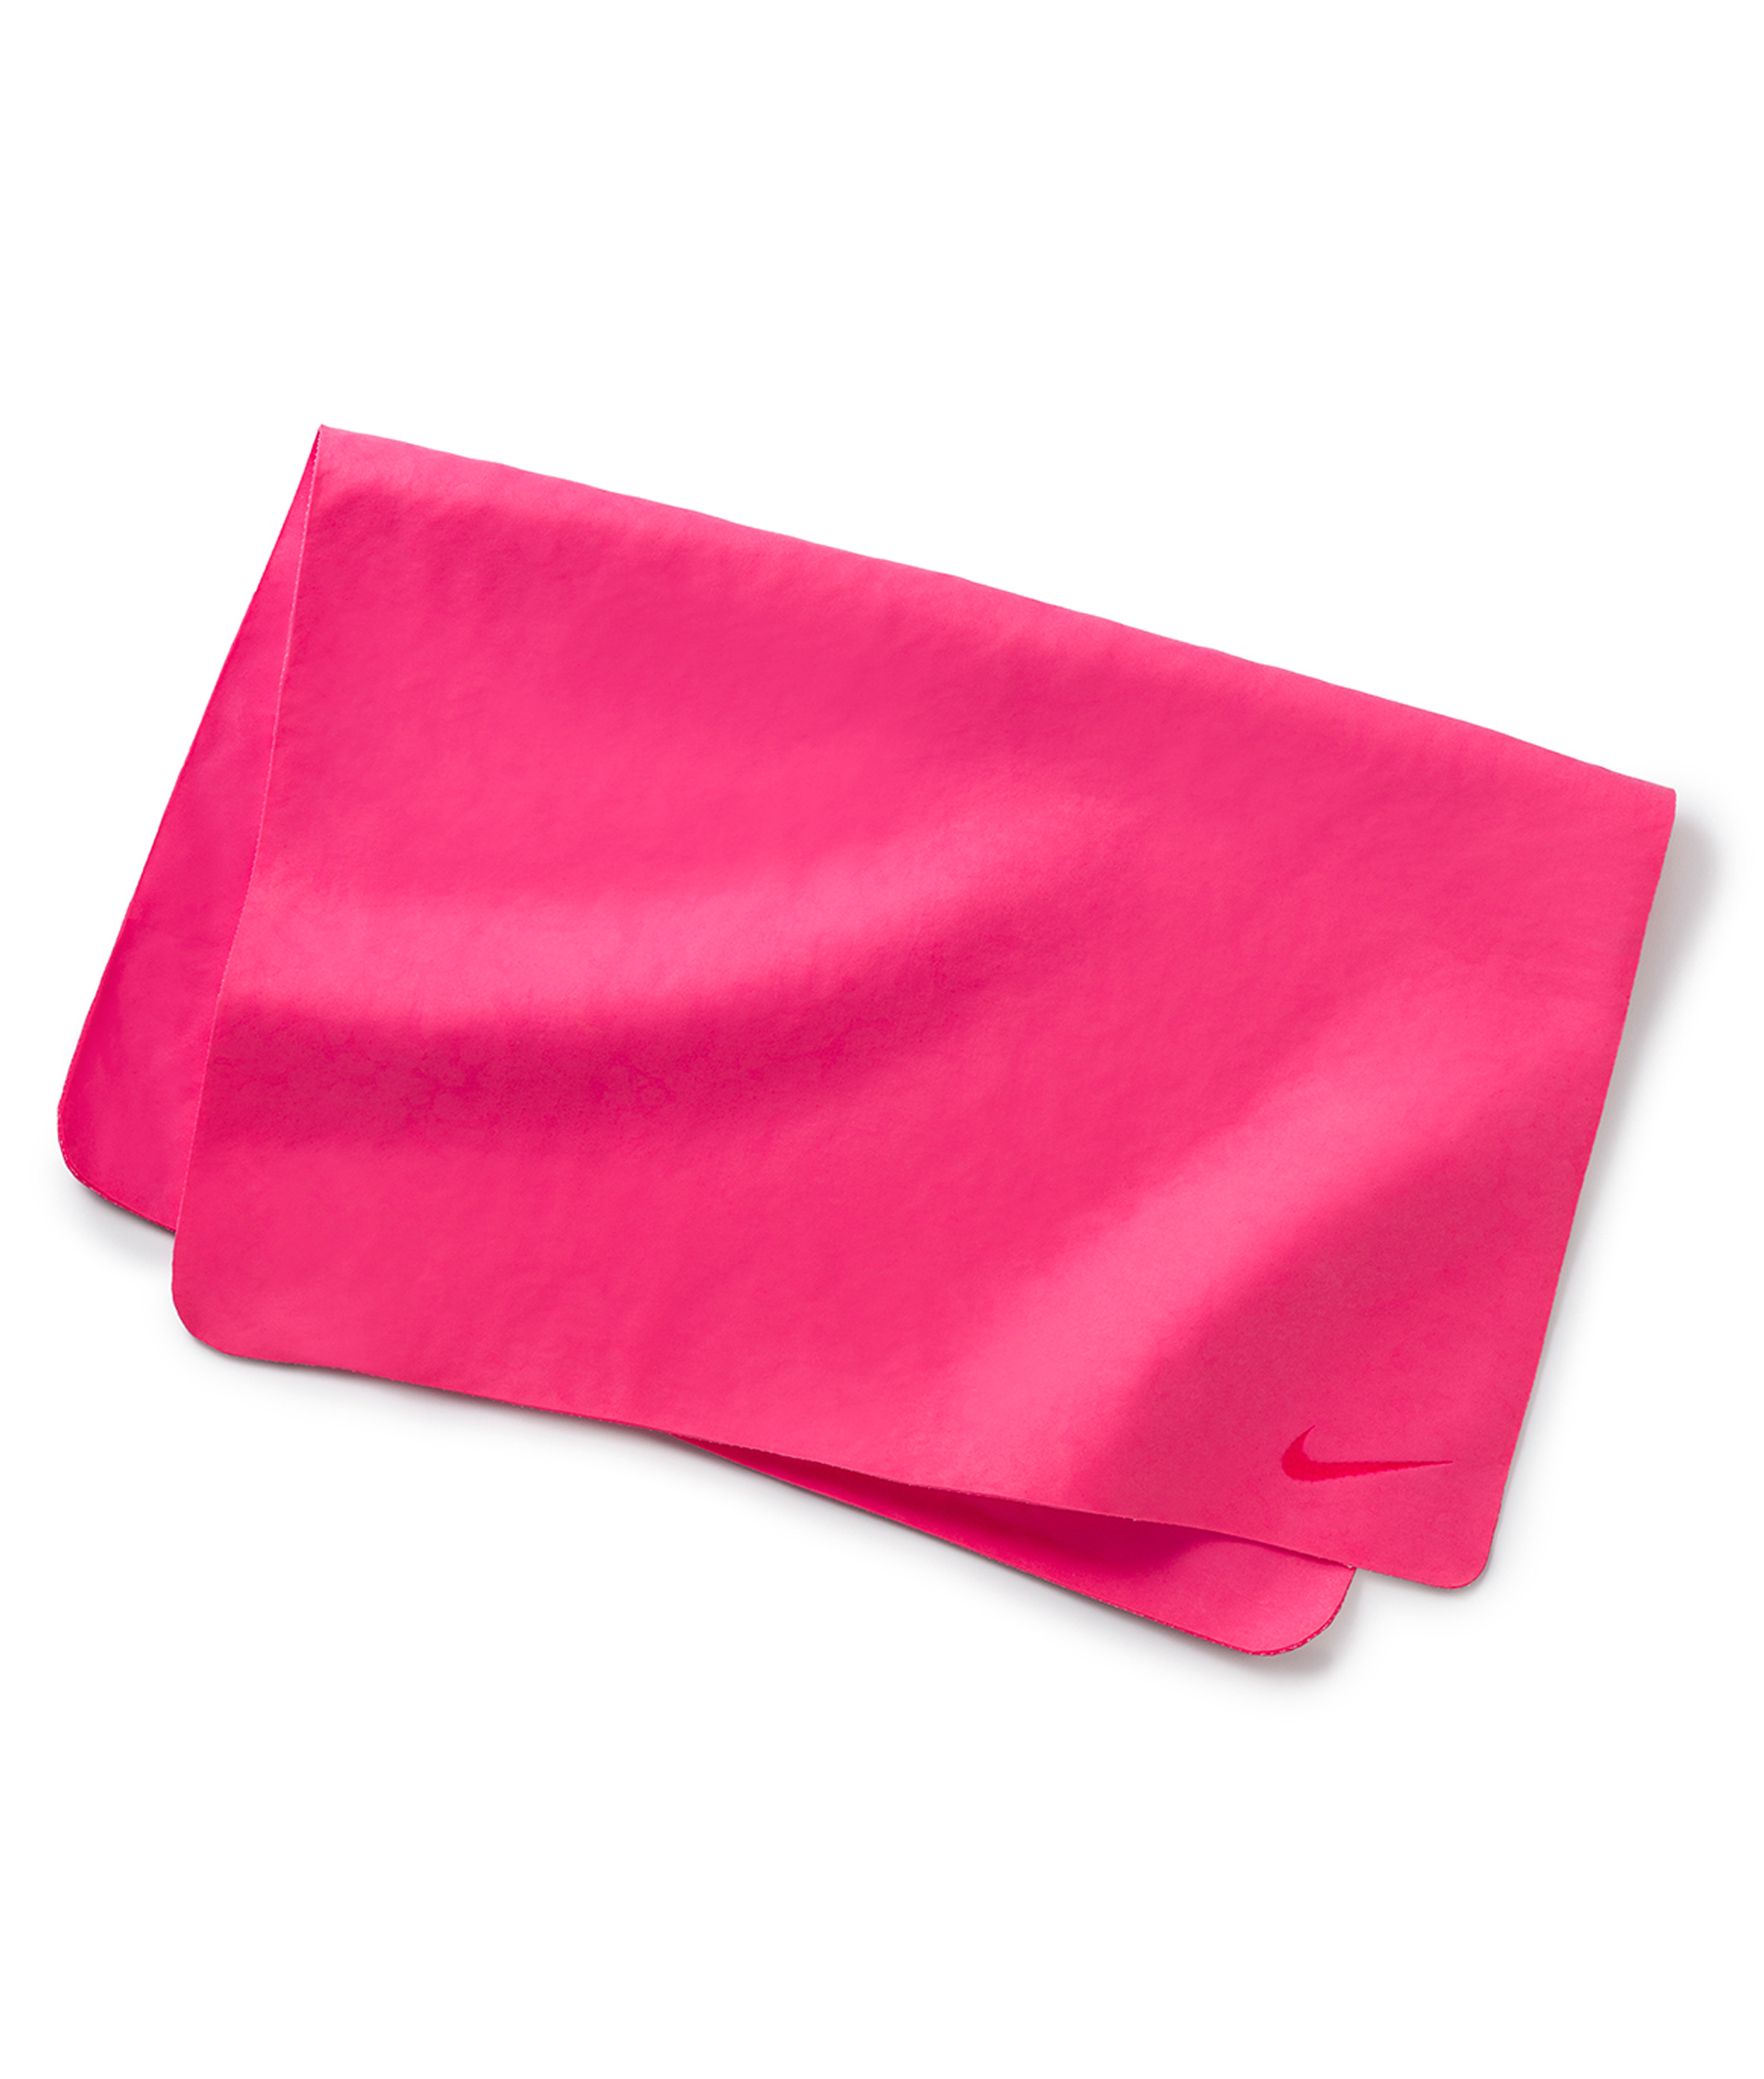 Nike Swim Large Hydro Towel - Pink